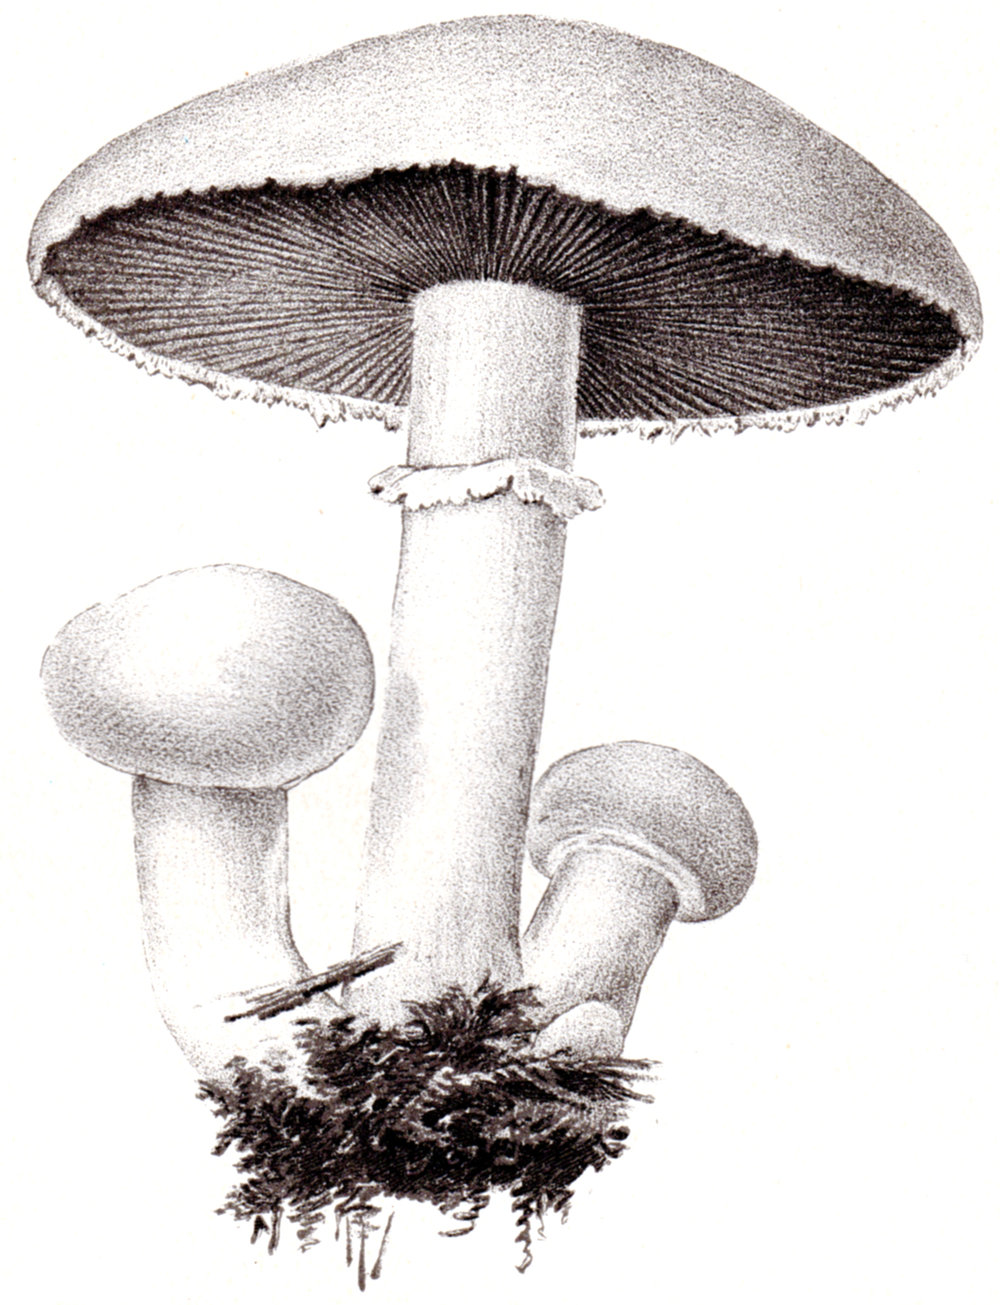 U.S. Dept. of Agriculture – Mushrooms 1897